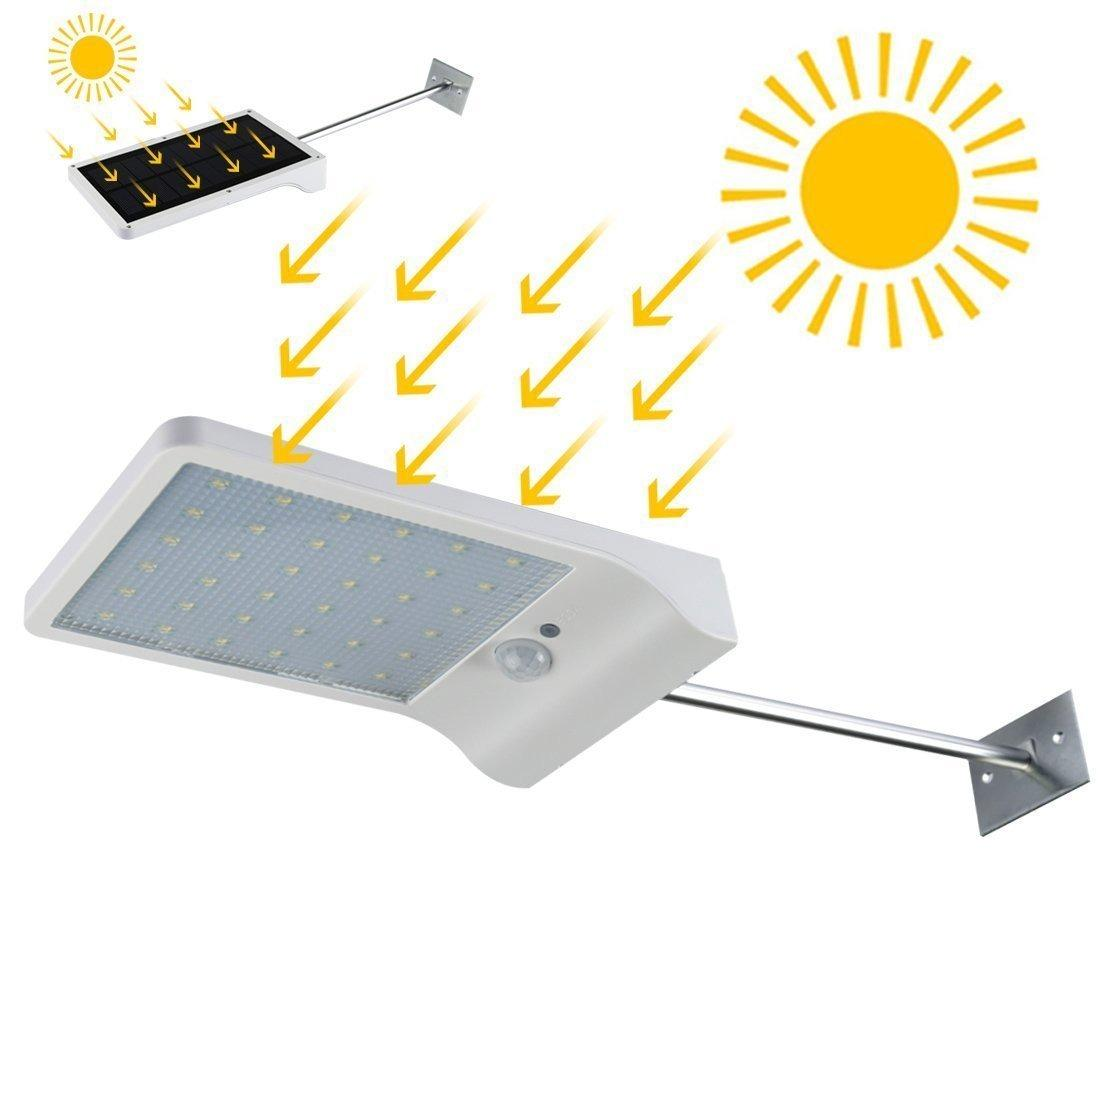 Solar Philippines Price List Led Light Set For Sale Lazada Details About Lighting Control Voice Activated 12v Switch Lamp Wall Lights Sconces